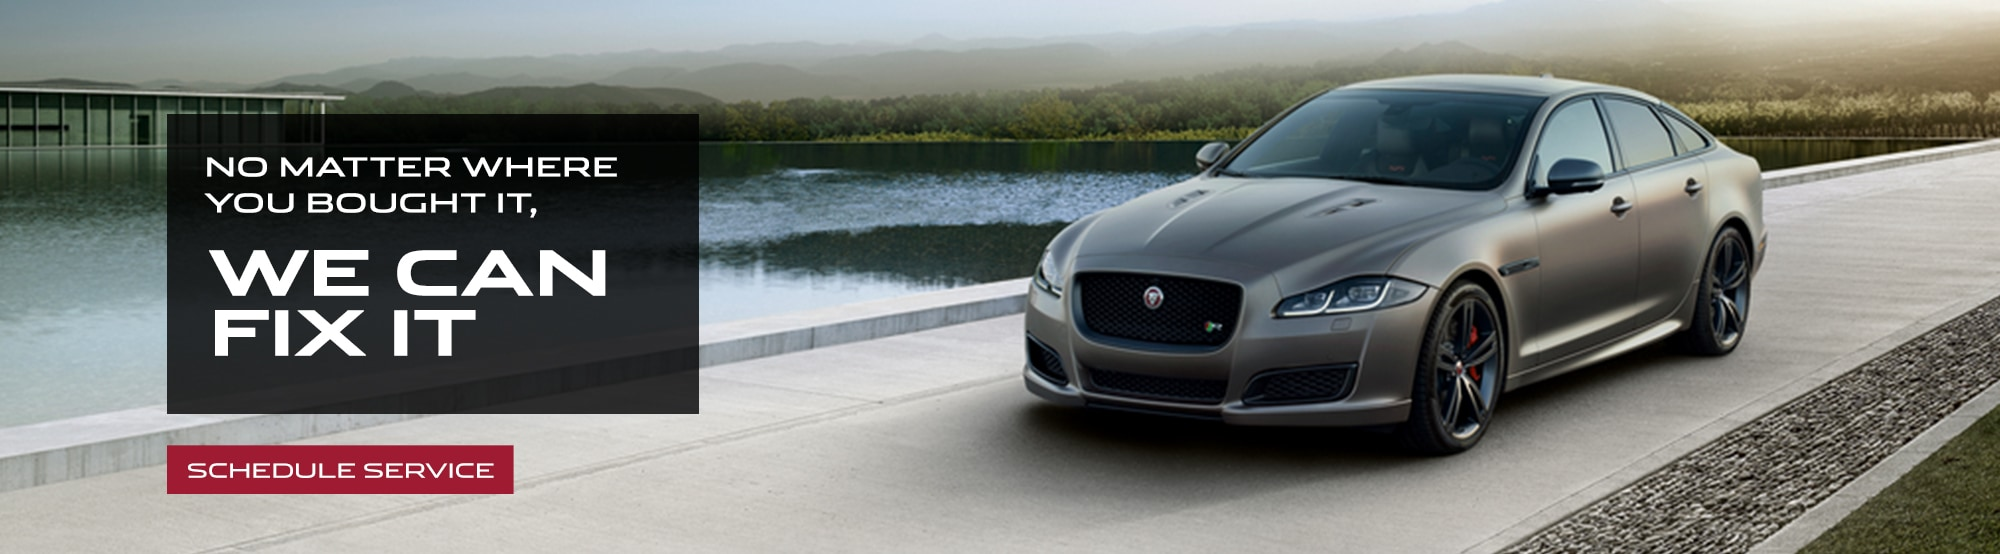 jaguar dealer hardeeville sc | jaguar hilton head